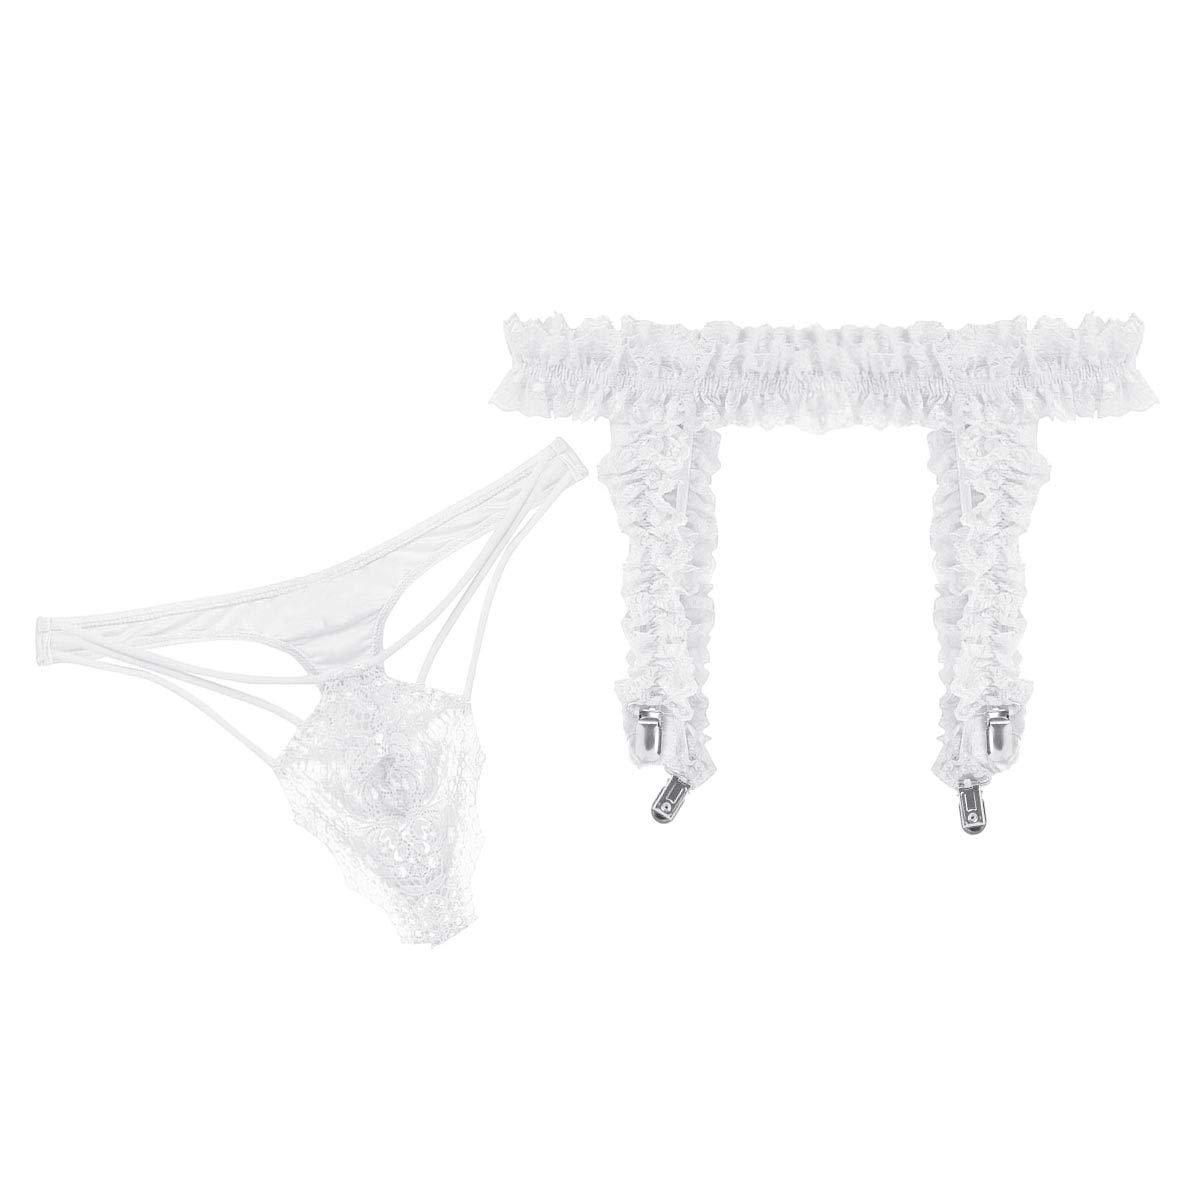 ranrann Mens 2 PCS Lingerie Ruffled Lace See Through G-String Thongs with Frilly Heart Clips Garter Belt